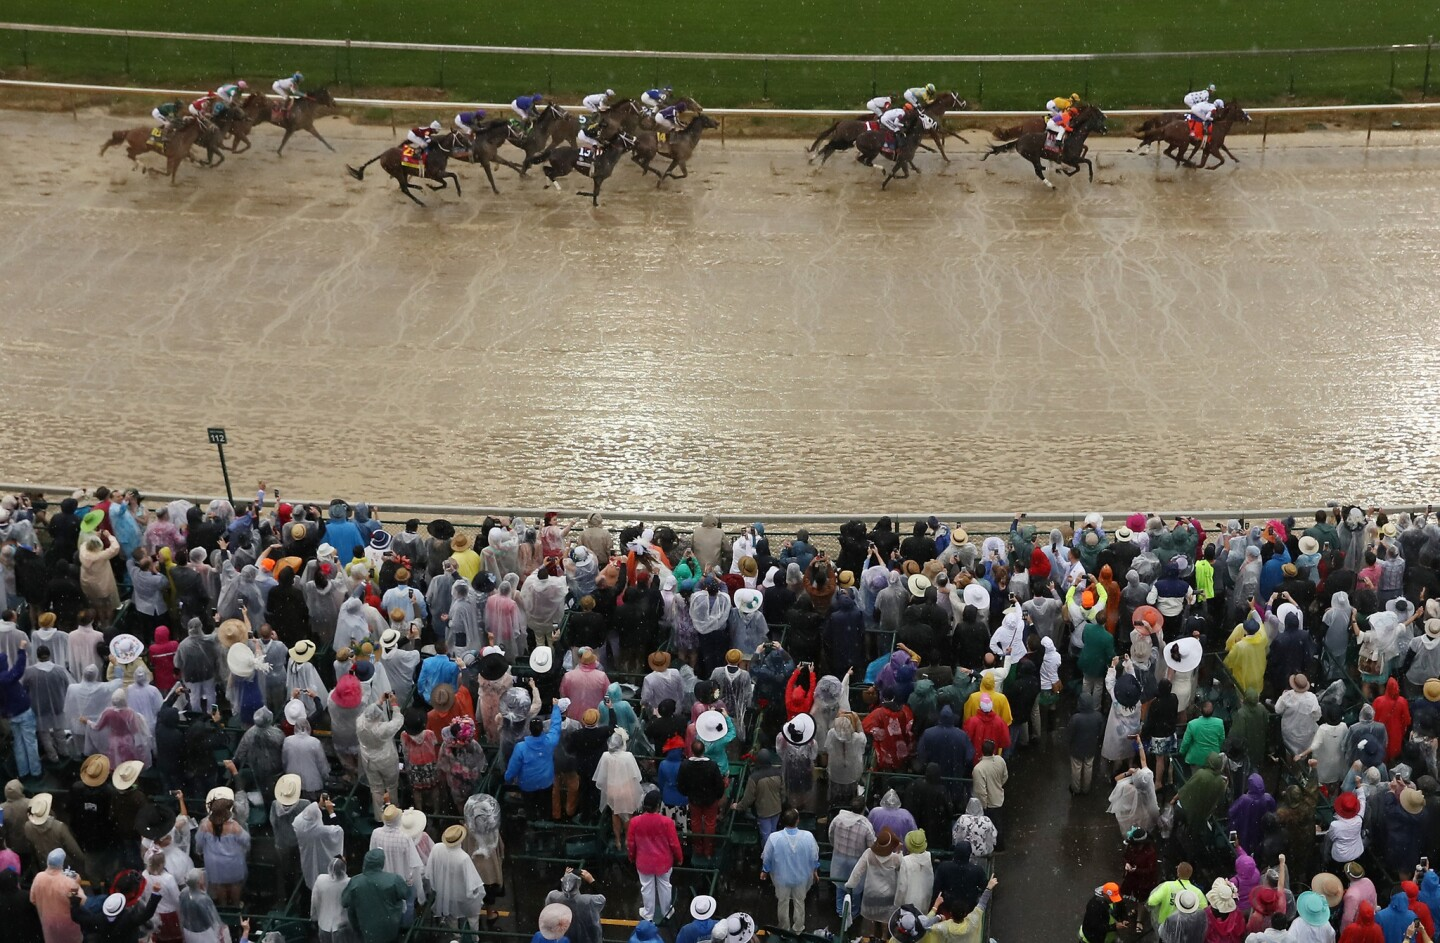 Spectators watch Promises Fulfilled, ridden by jockey Corey Lanerie, and Justify, with Mike Smith aboard, lead the field into the first turn during the 144th running of the Kentucky Derby.